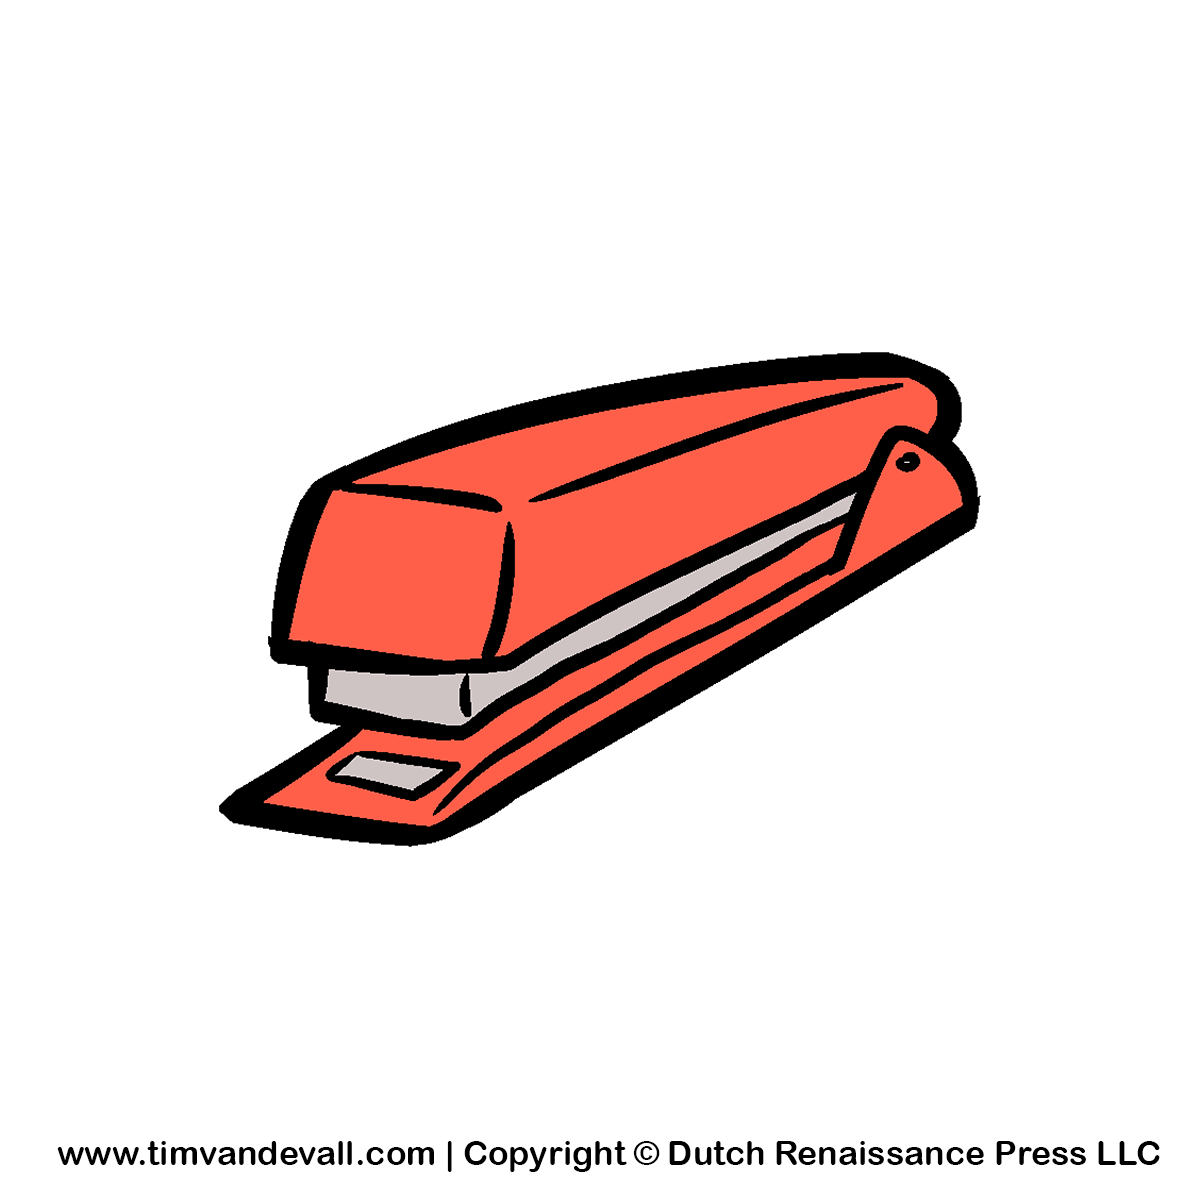 Free stapler clipart image for kids and teachers